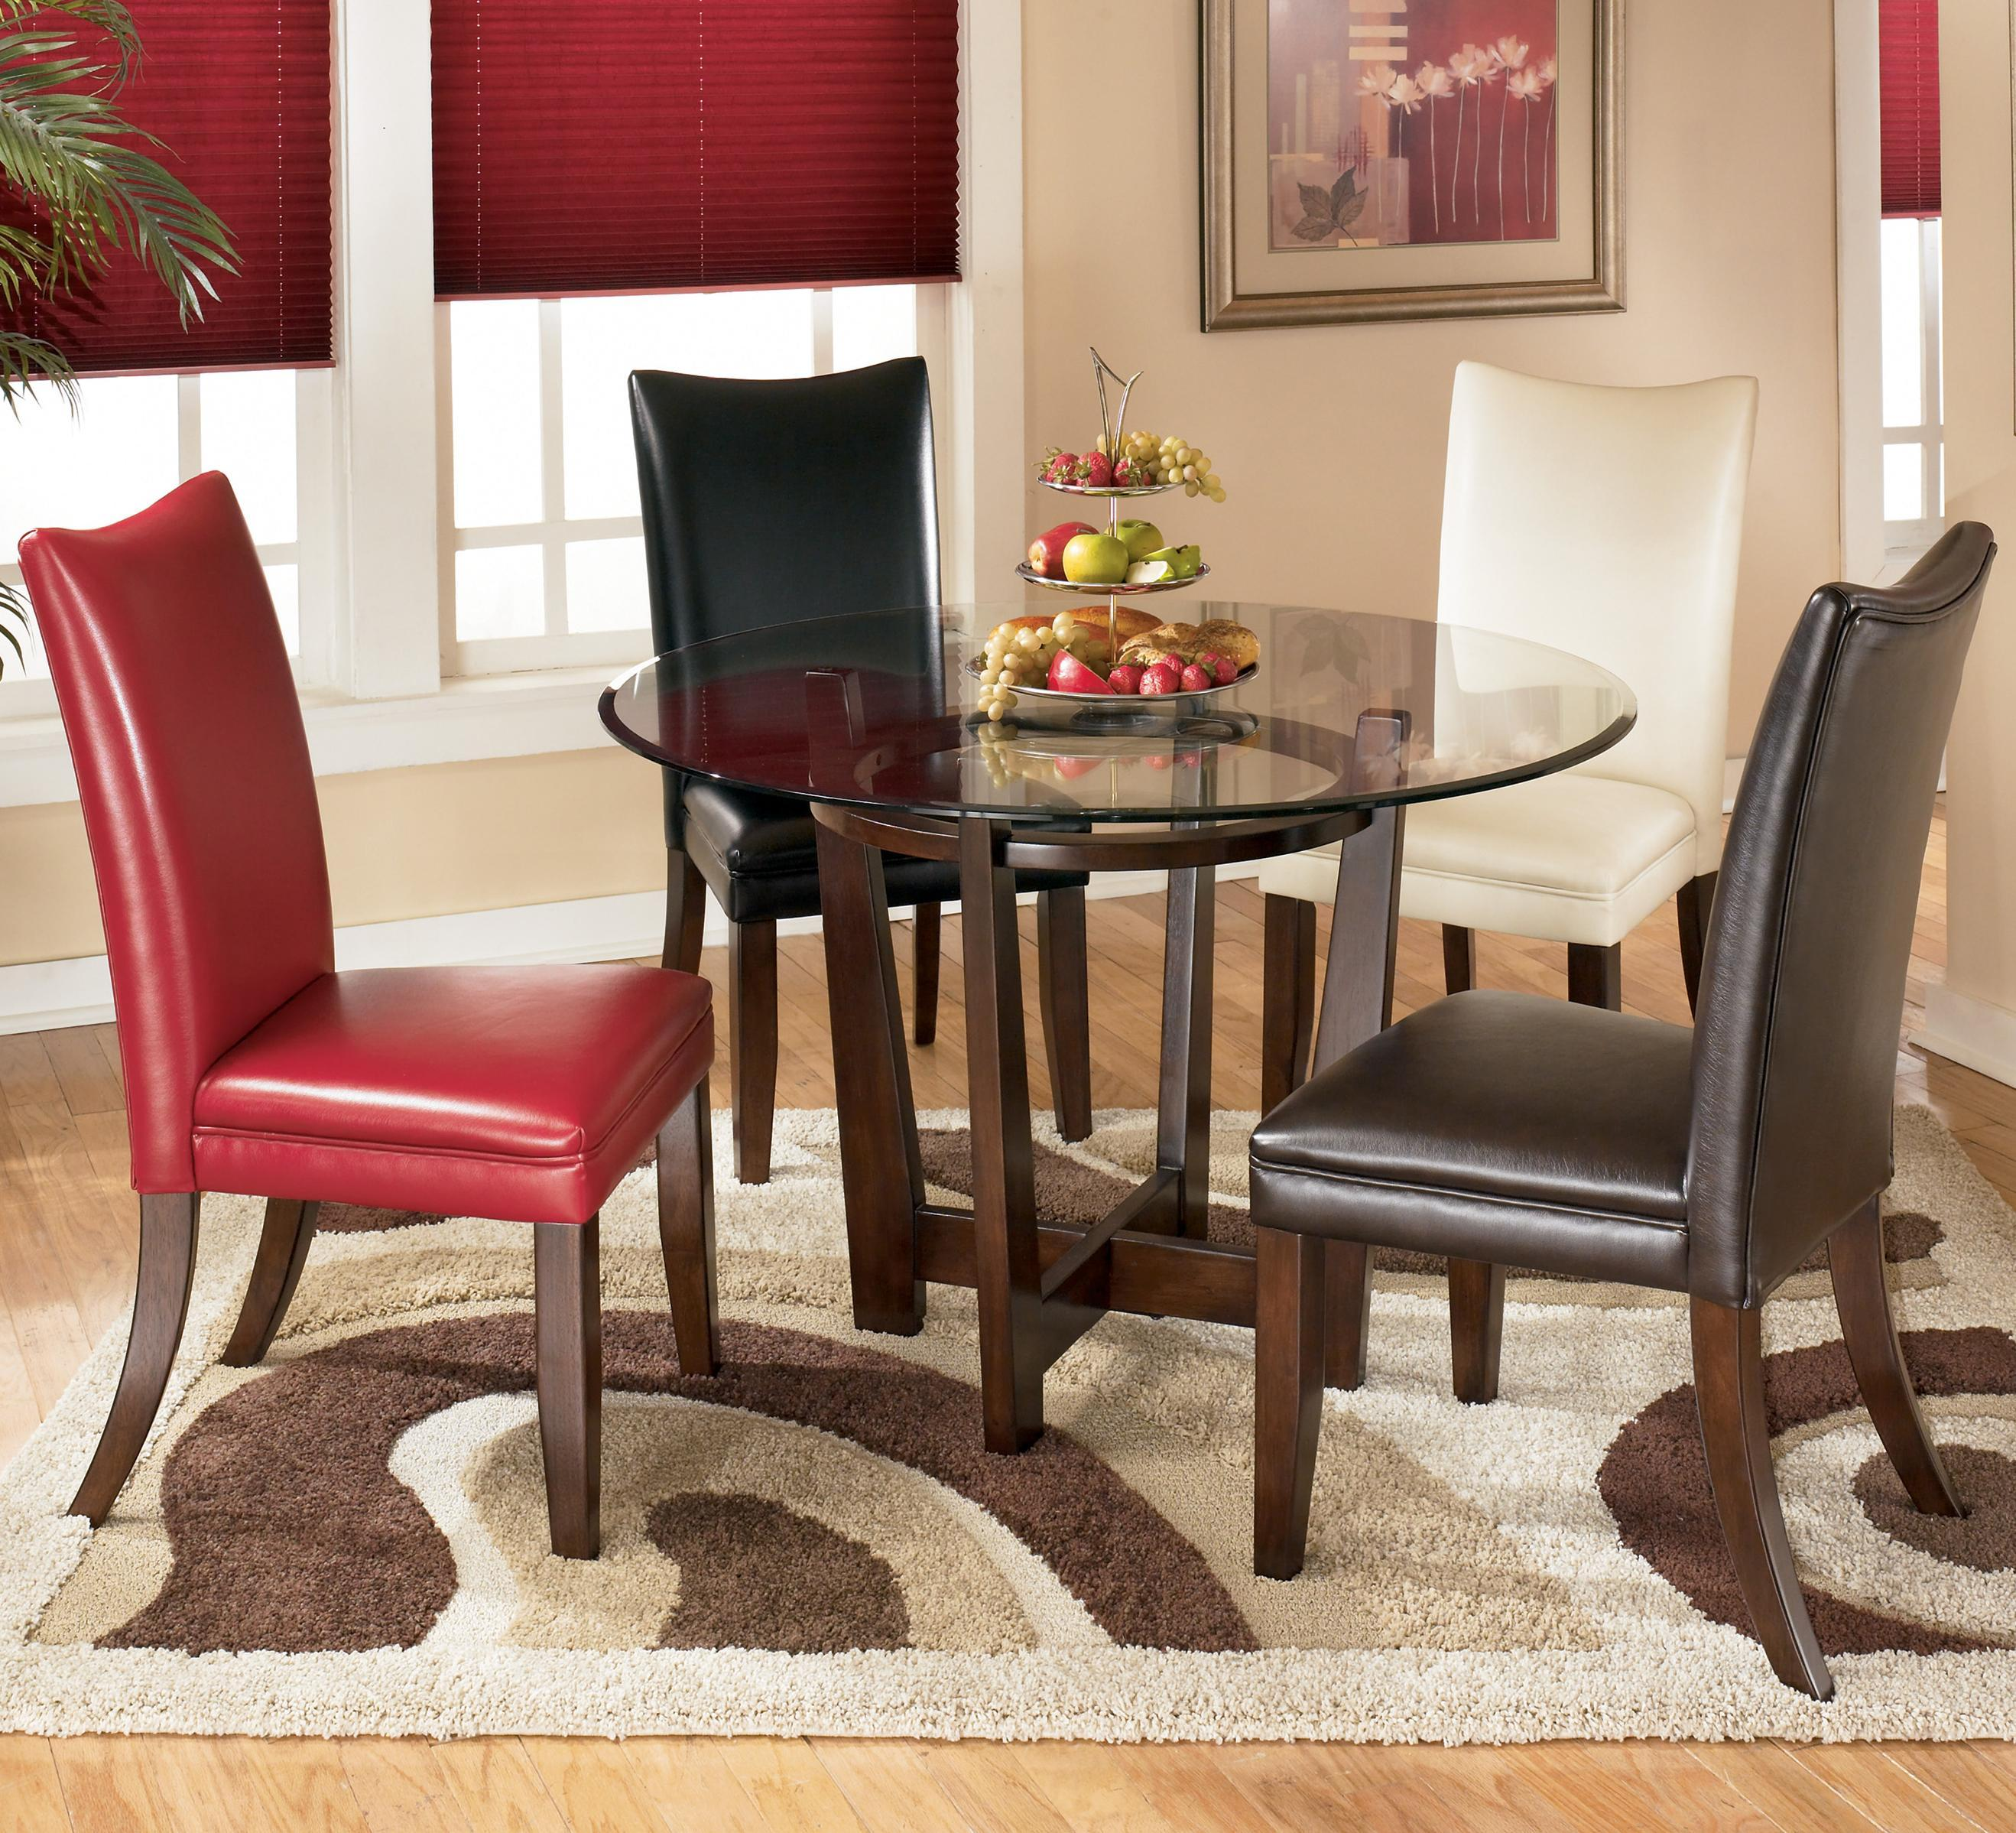 Signature Design by Ashley Charrell 5 Piece Round Dining Table Set - Item Number: D357-15+01+02+03+04